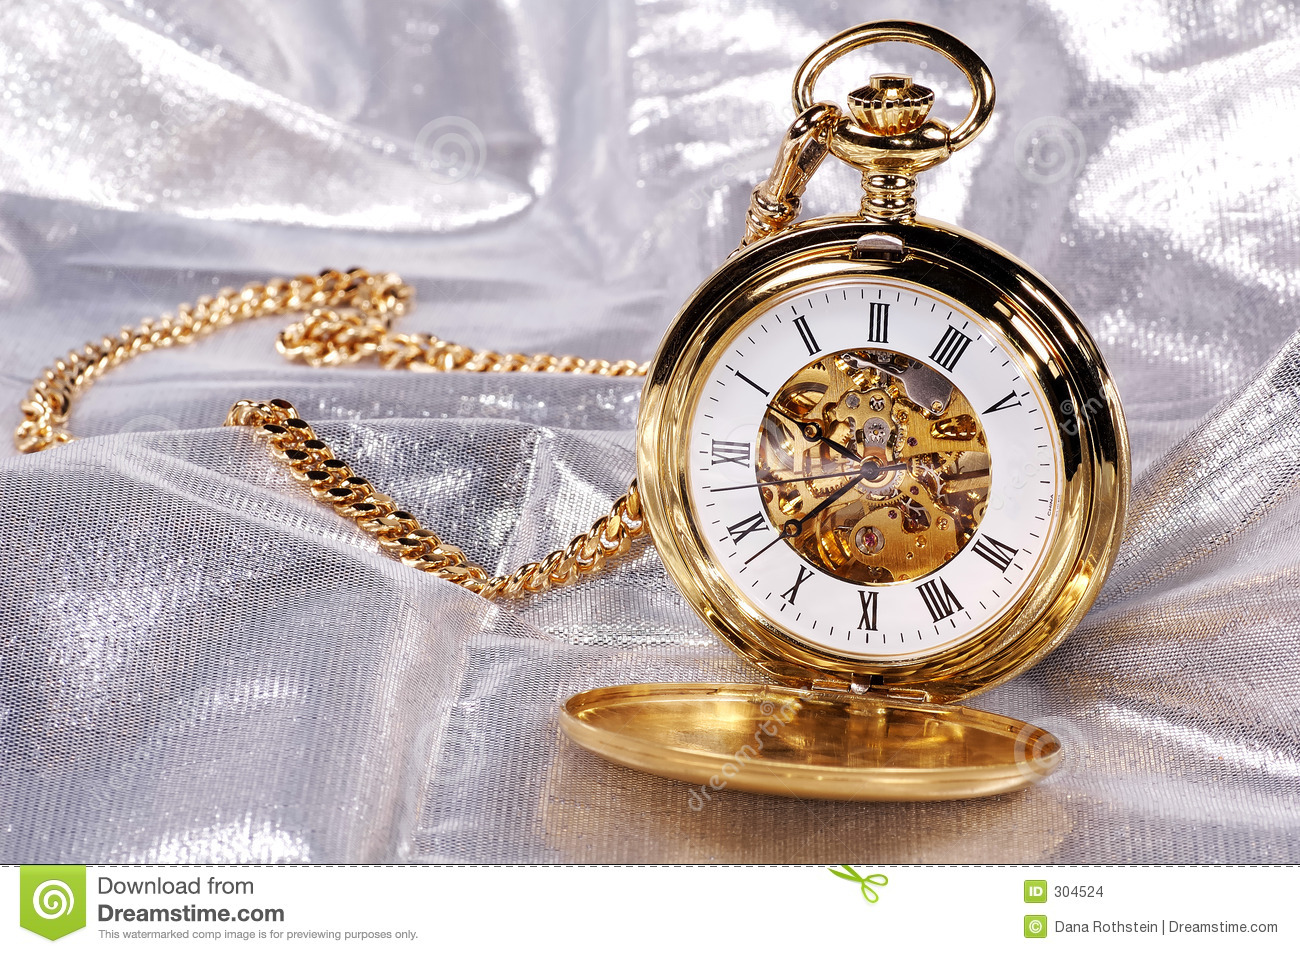 Pocketwatch золота